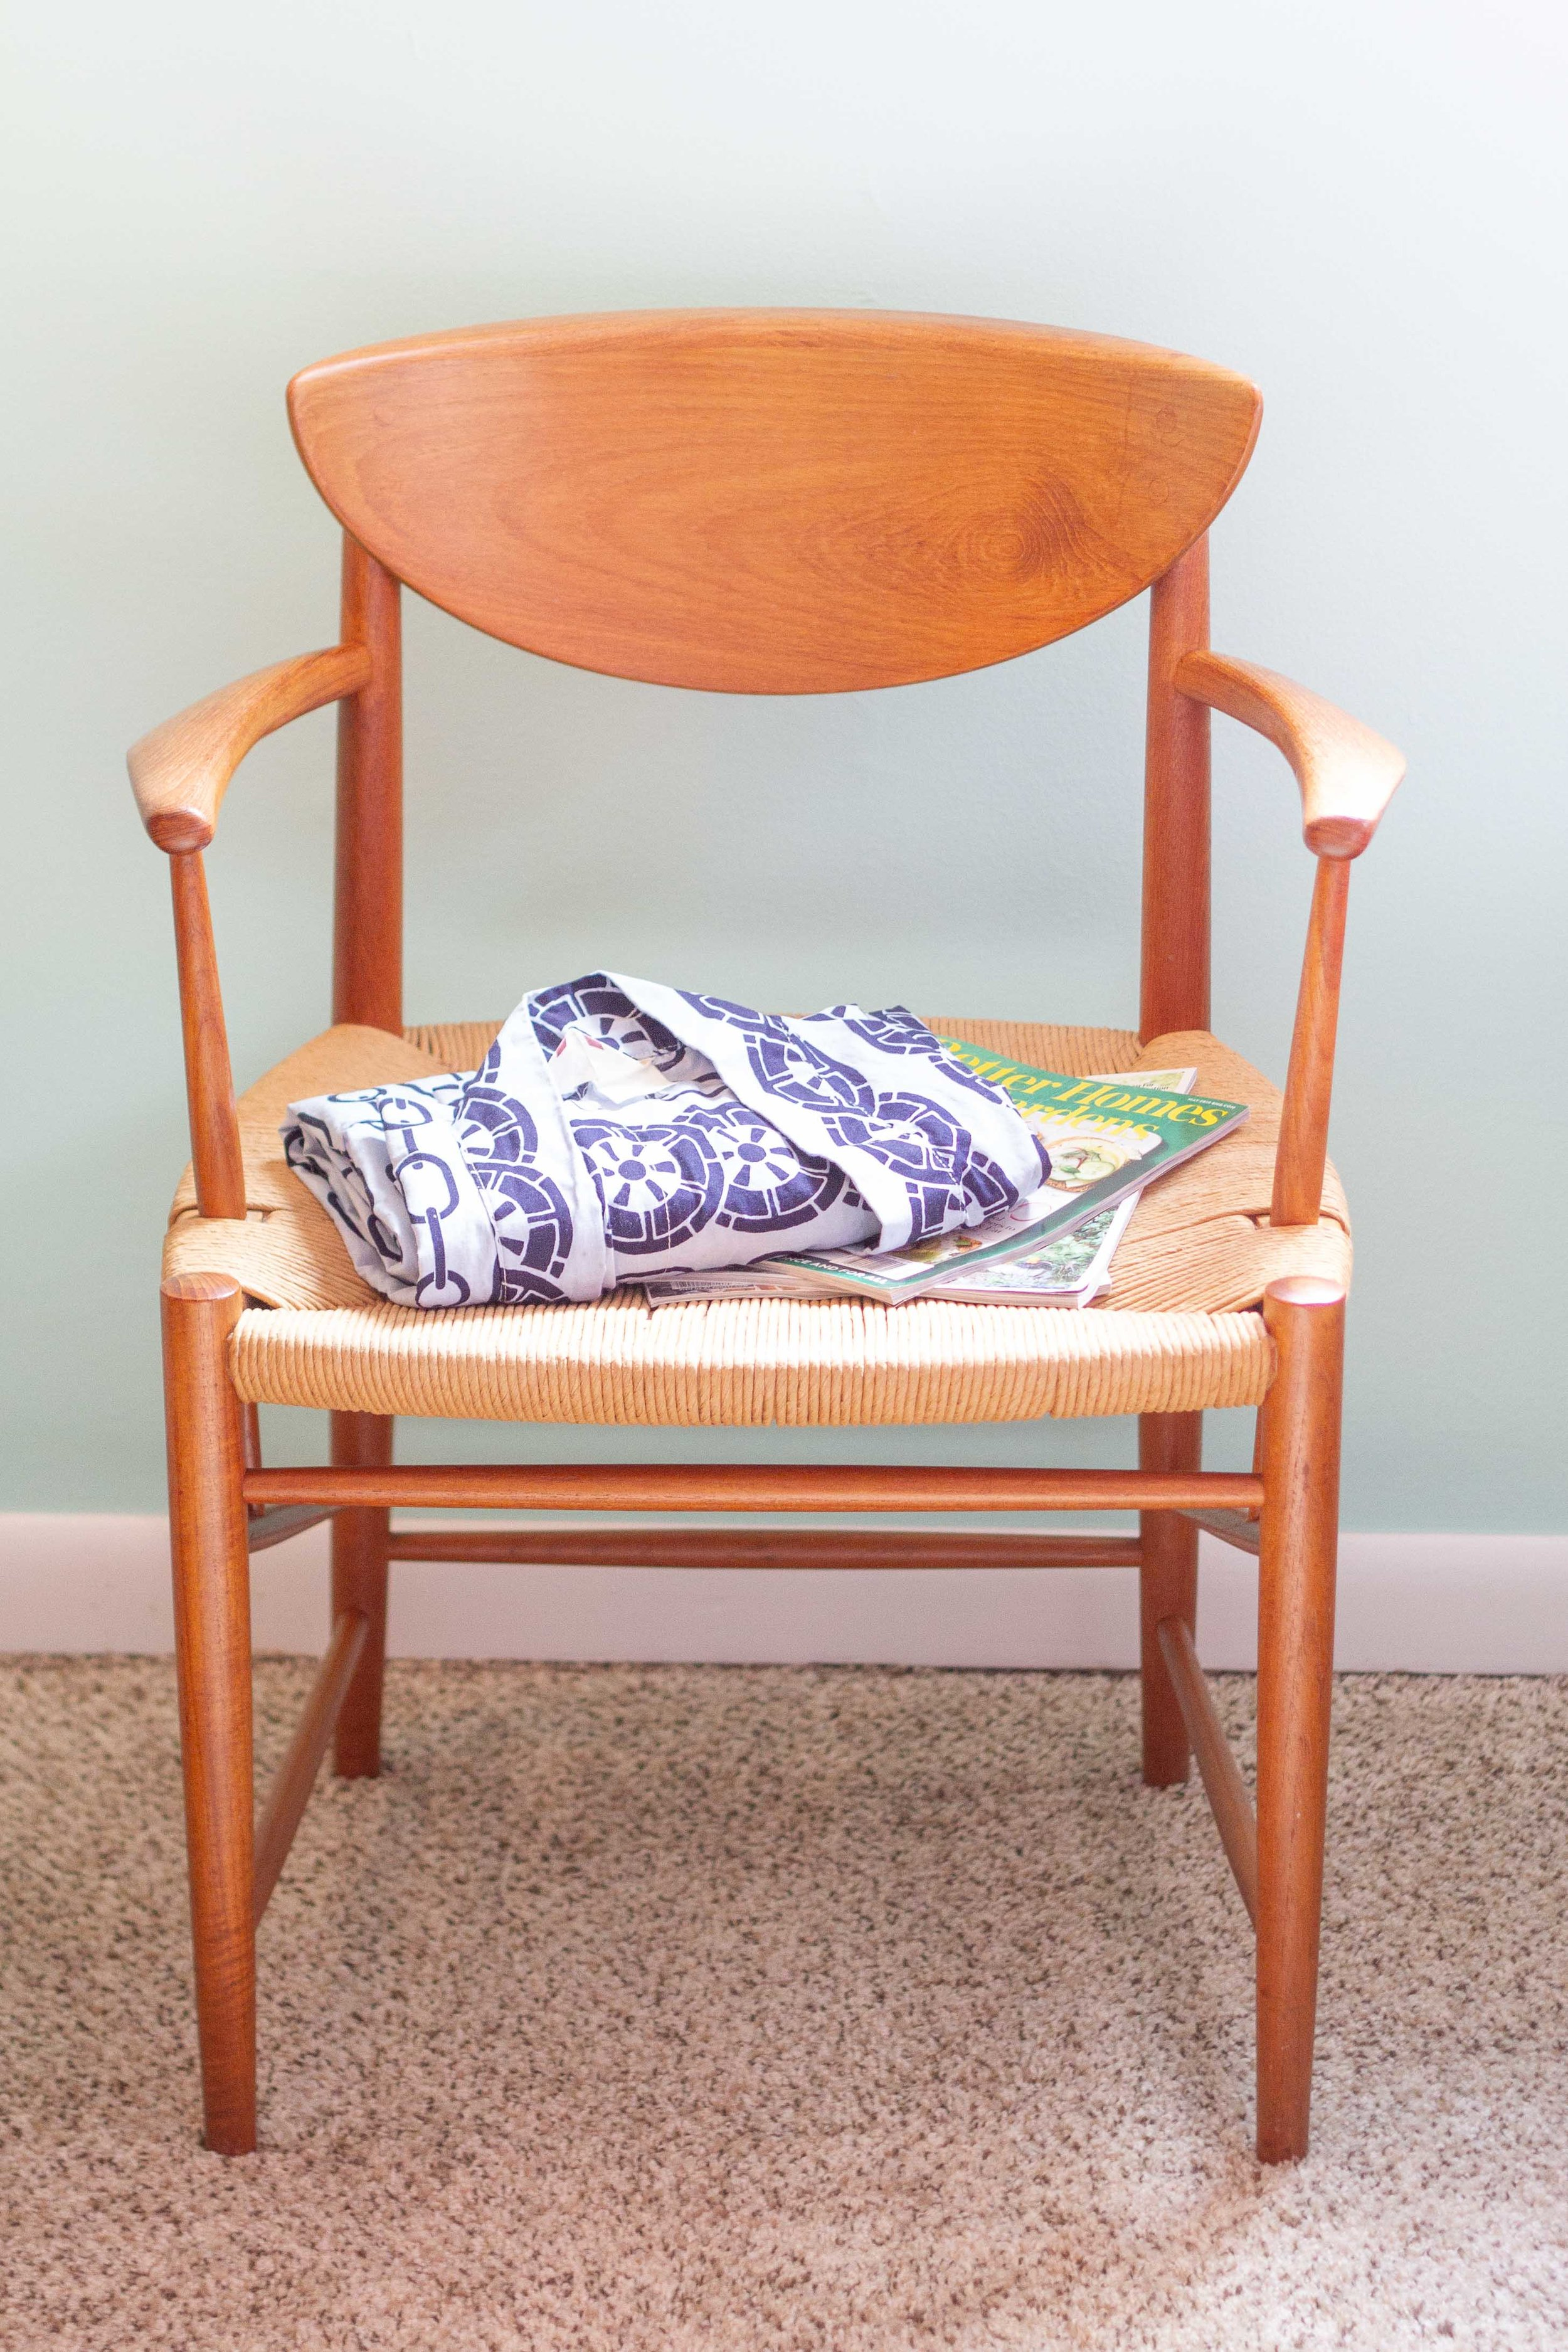 My great aunt bought these chairs and a table to match in Scandinavia in the early 1960s.